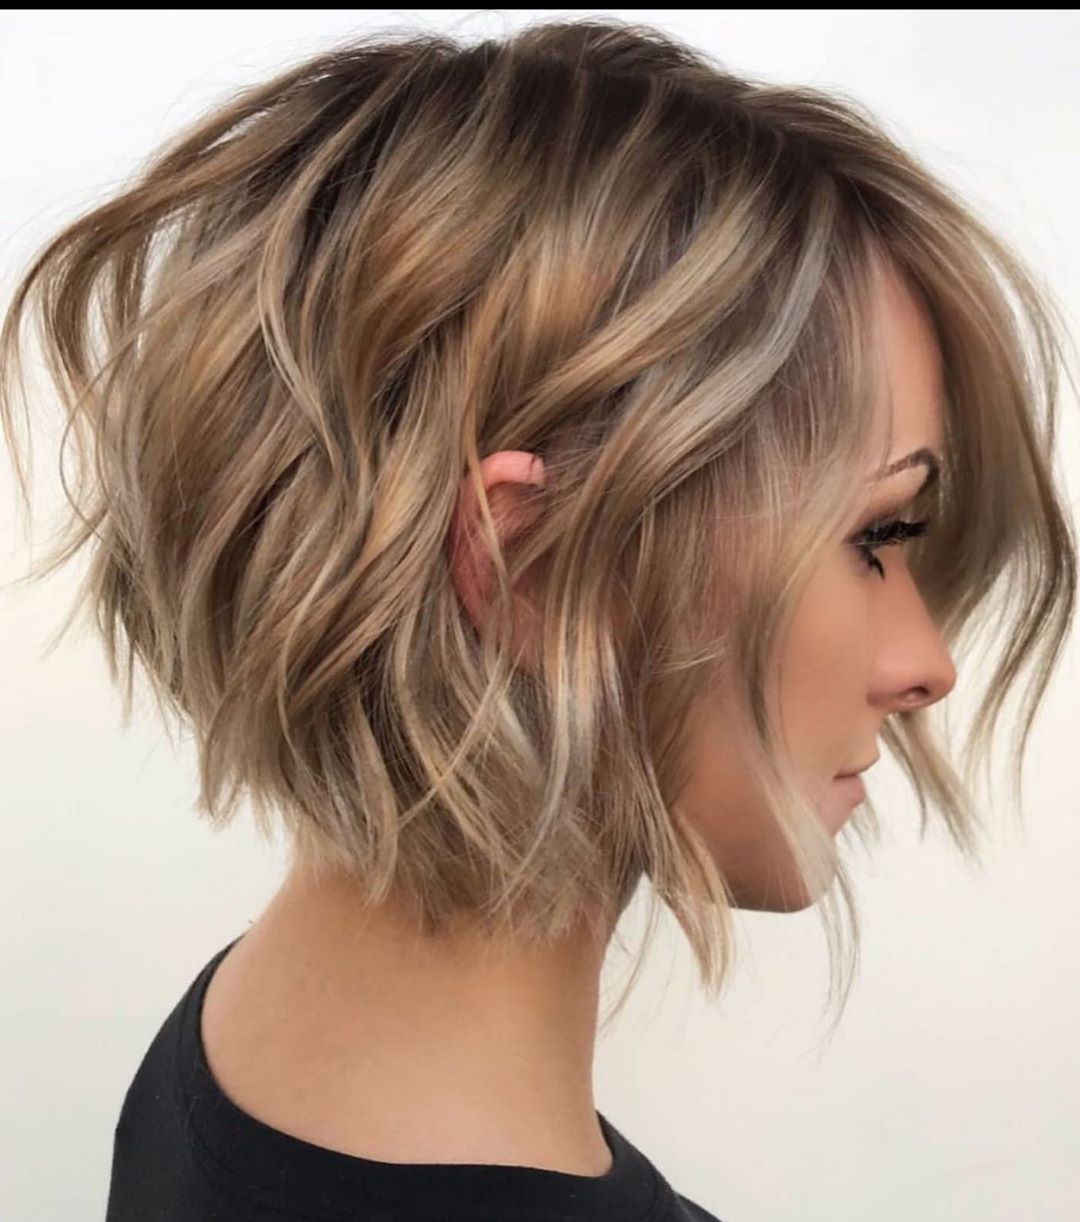 Short Textured Hair Expert On Instagram I Don T Know About You Guys But I Am So Korte Kapsels Voor Fijn Haar Kapsels Voor Kort Haar Bob Kapsel Voor Fijn Haar